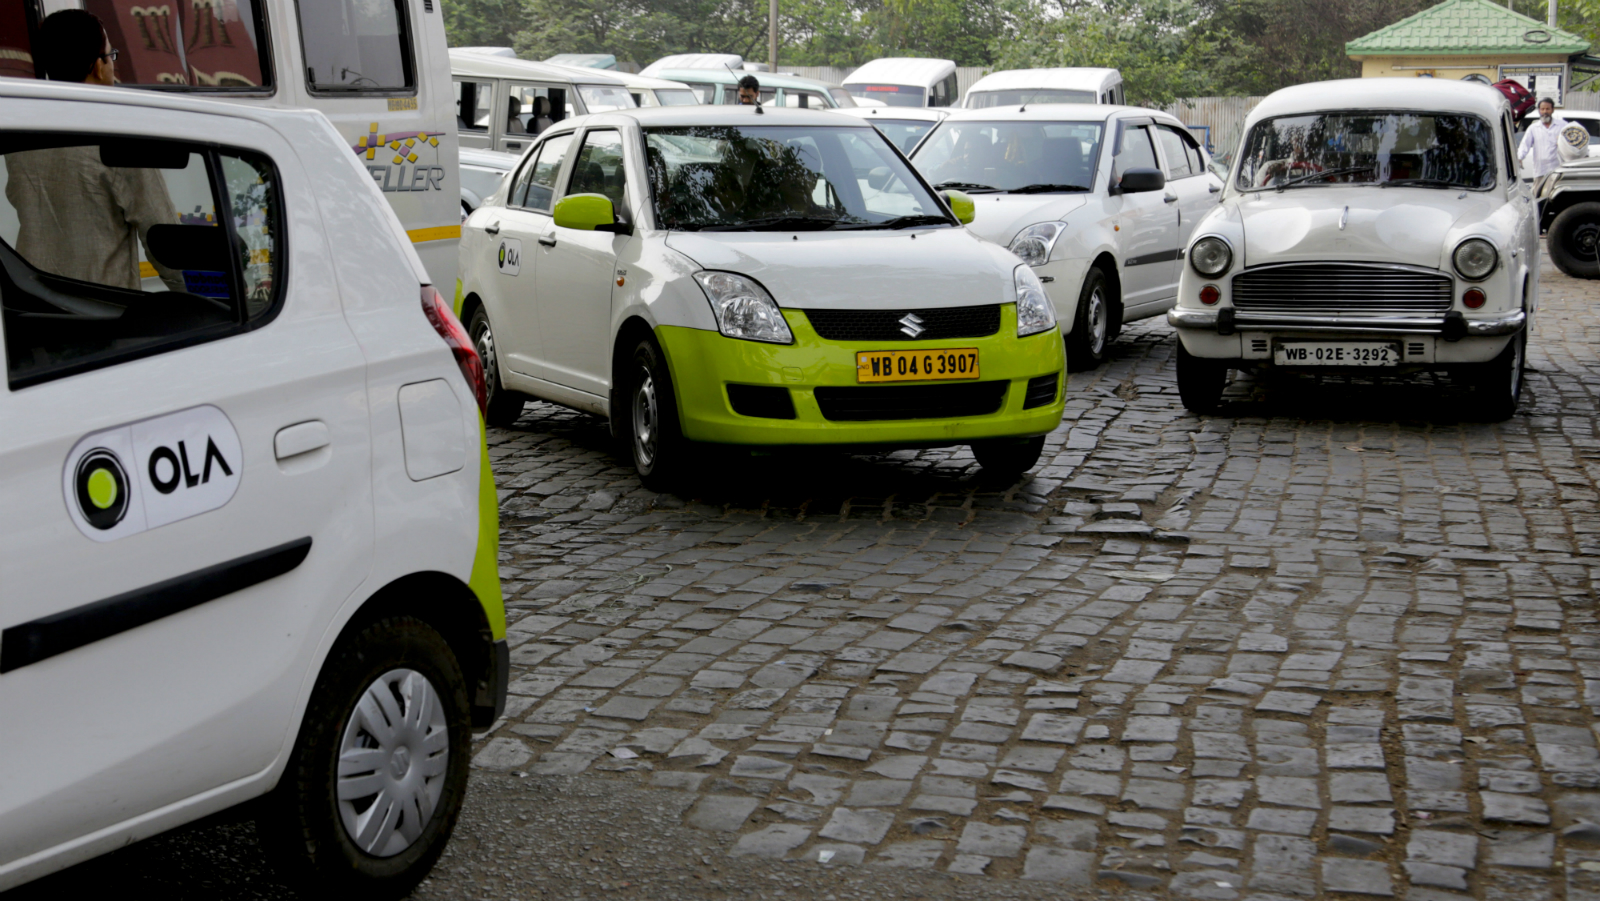 In this March 29, 2016 photo, Ola cabs, left, waiting for customers are parked next to other cars in Kolkata, India. Aiming to wrest control of India's booming taxi market, two cab-hailing smartphone apps, Uber and Ola, are promising hundreds of millions in new investments while also facing off with one another in court.